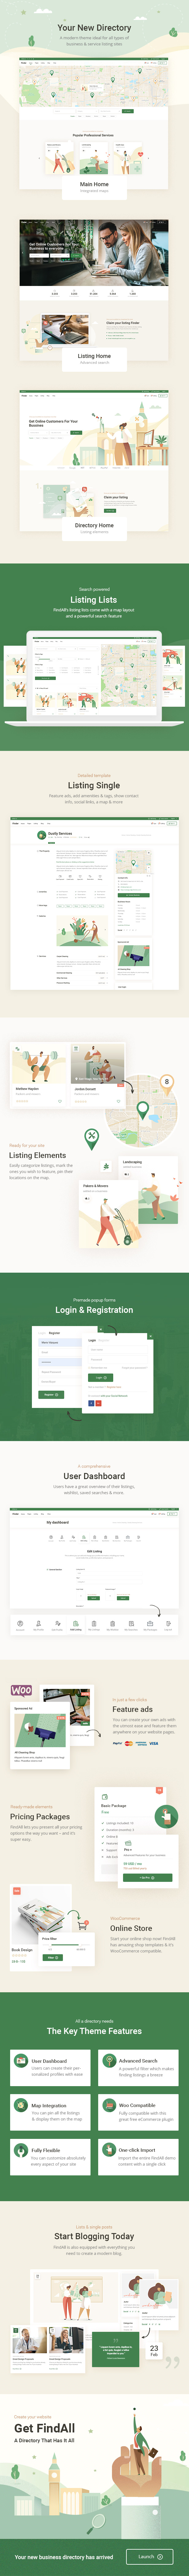 FindAll - Business Directory Theme - 1